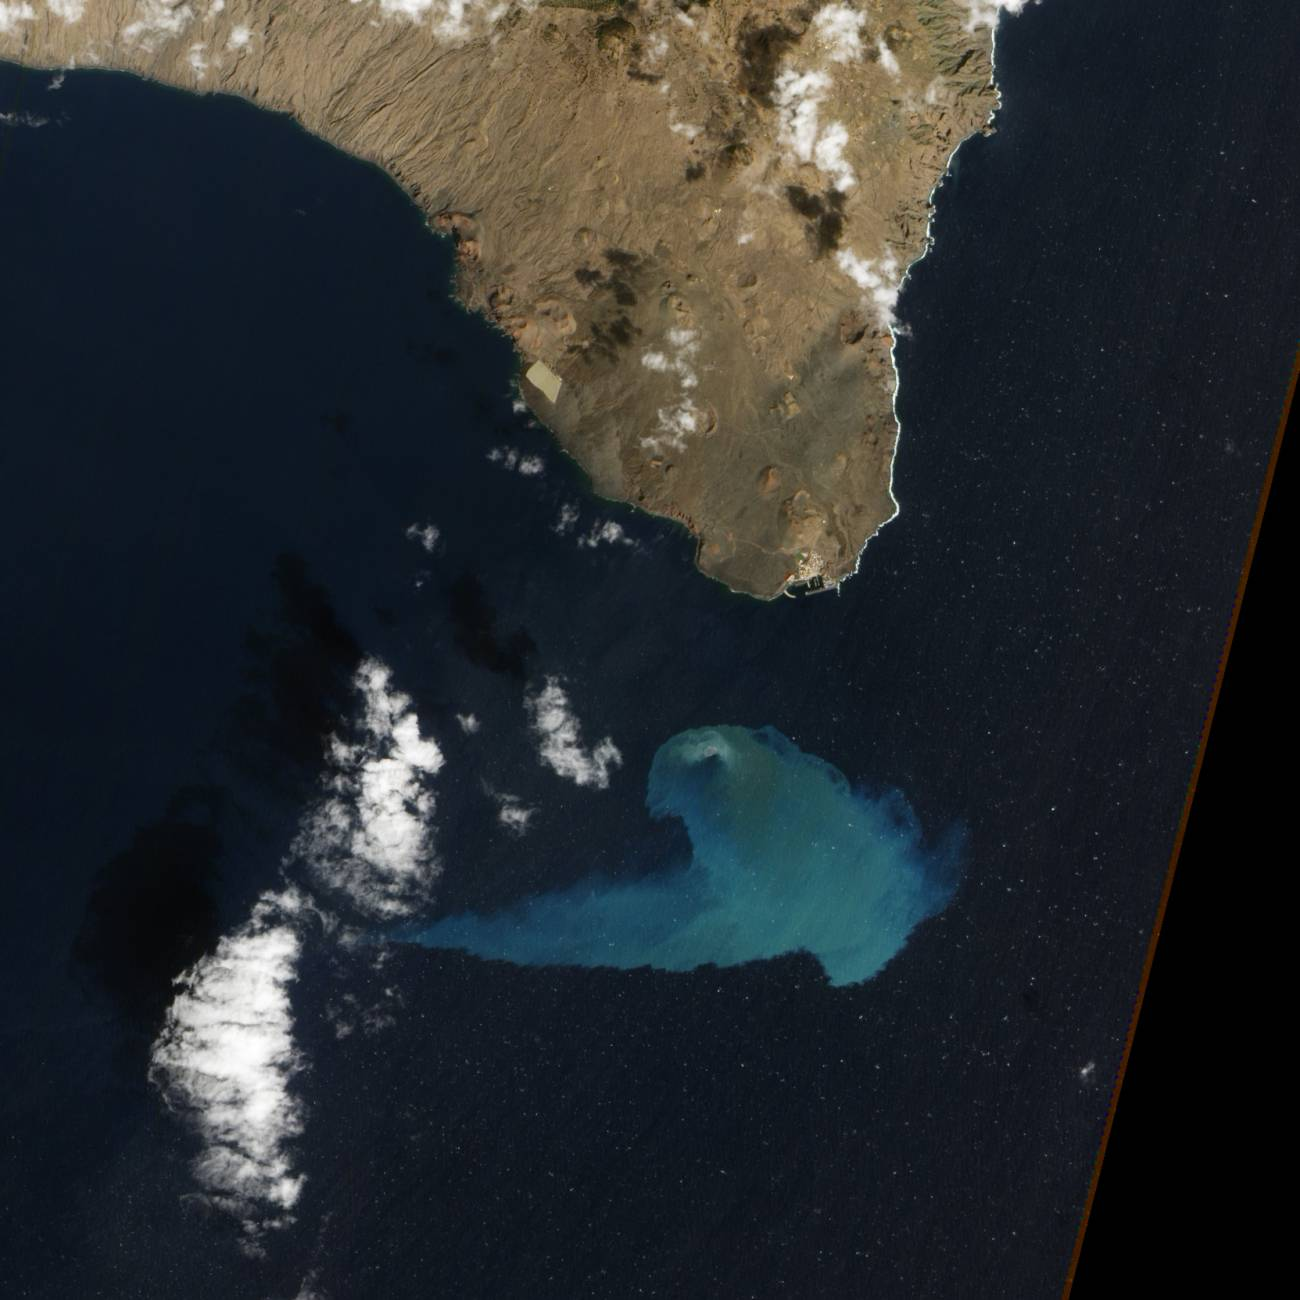 Instantánea tomada recientemente por el Advanced Land Imager (ALI) a bordo del satélite Earth Observing-1 (EO-1).